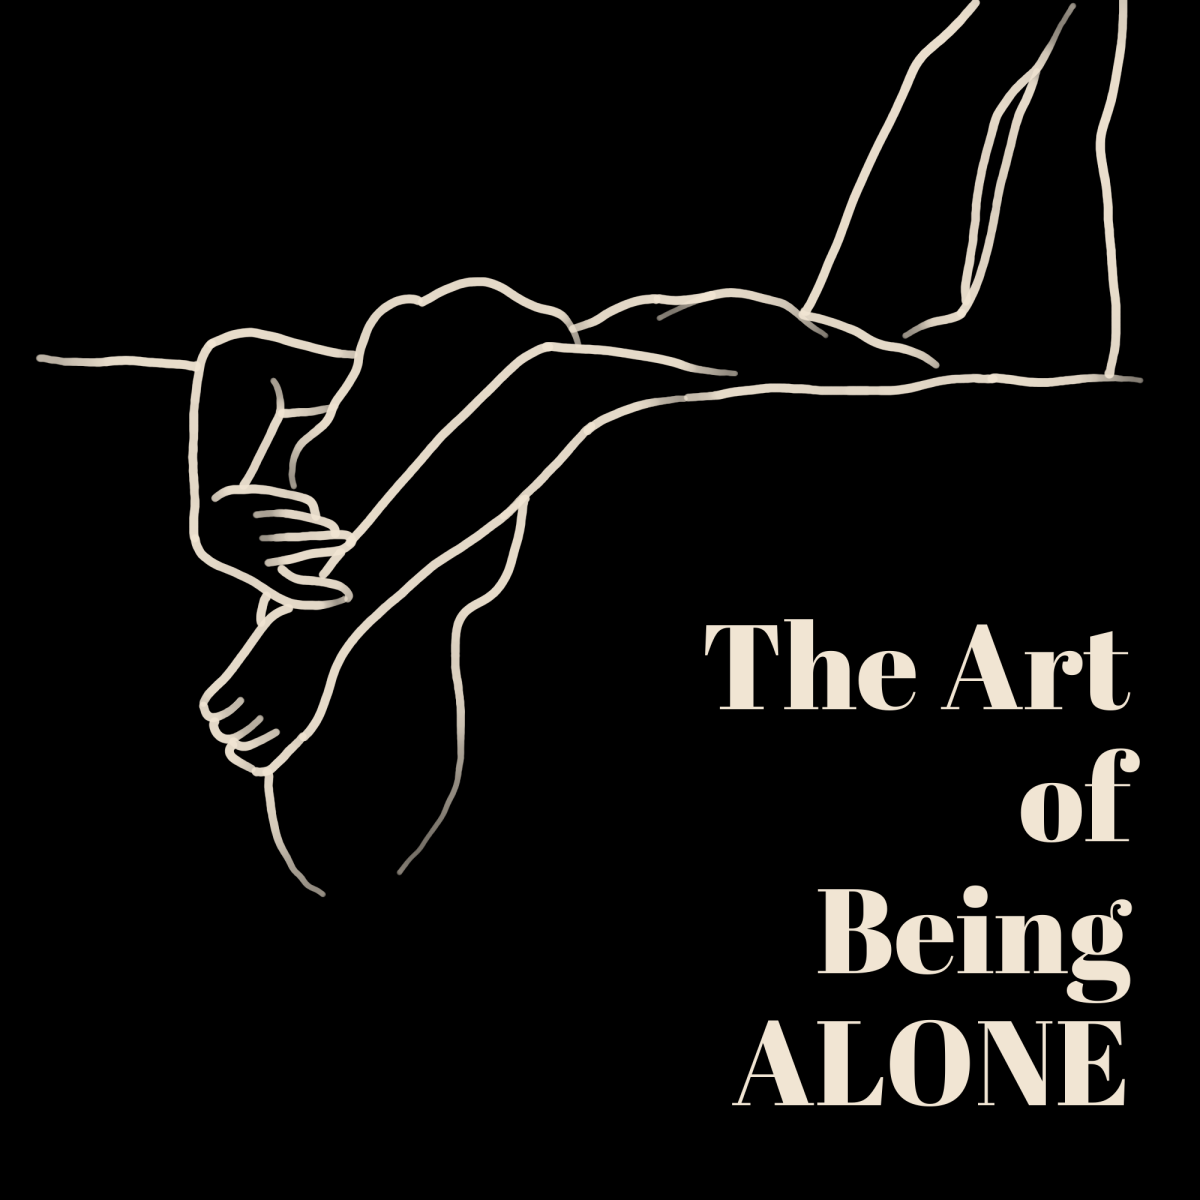 """A line art drawing of a woman draped across a bed, with the words """"The Art of Being ALONE"""" in text slightly underneath"""